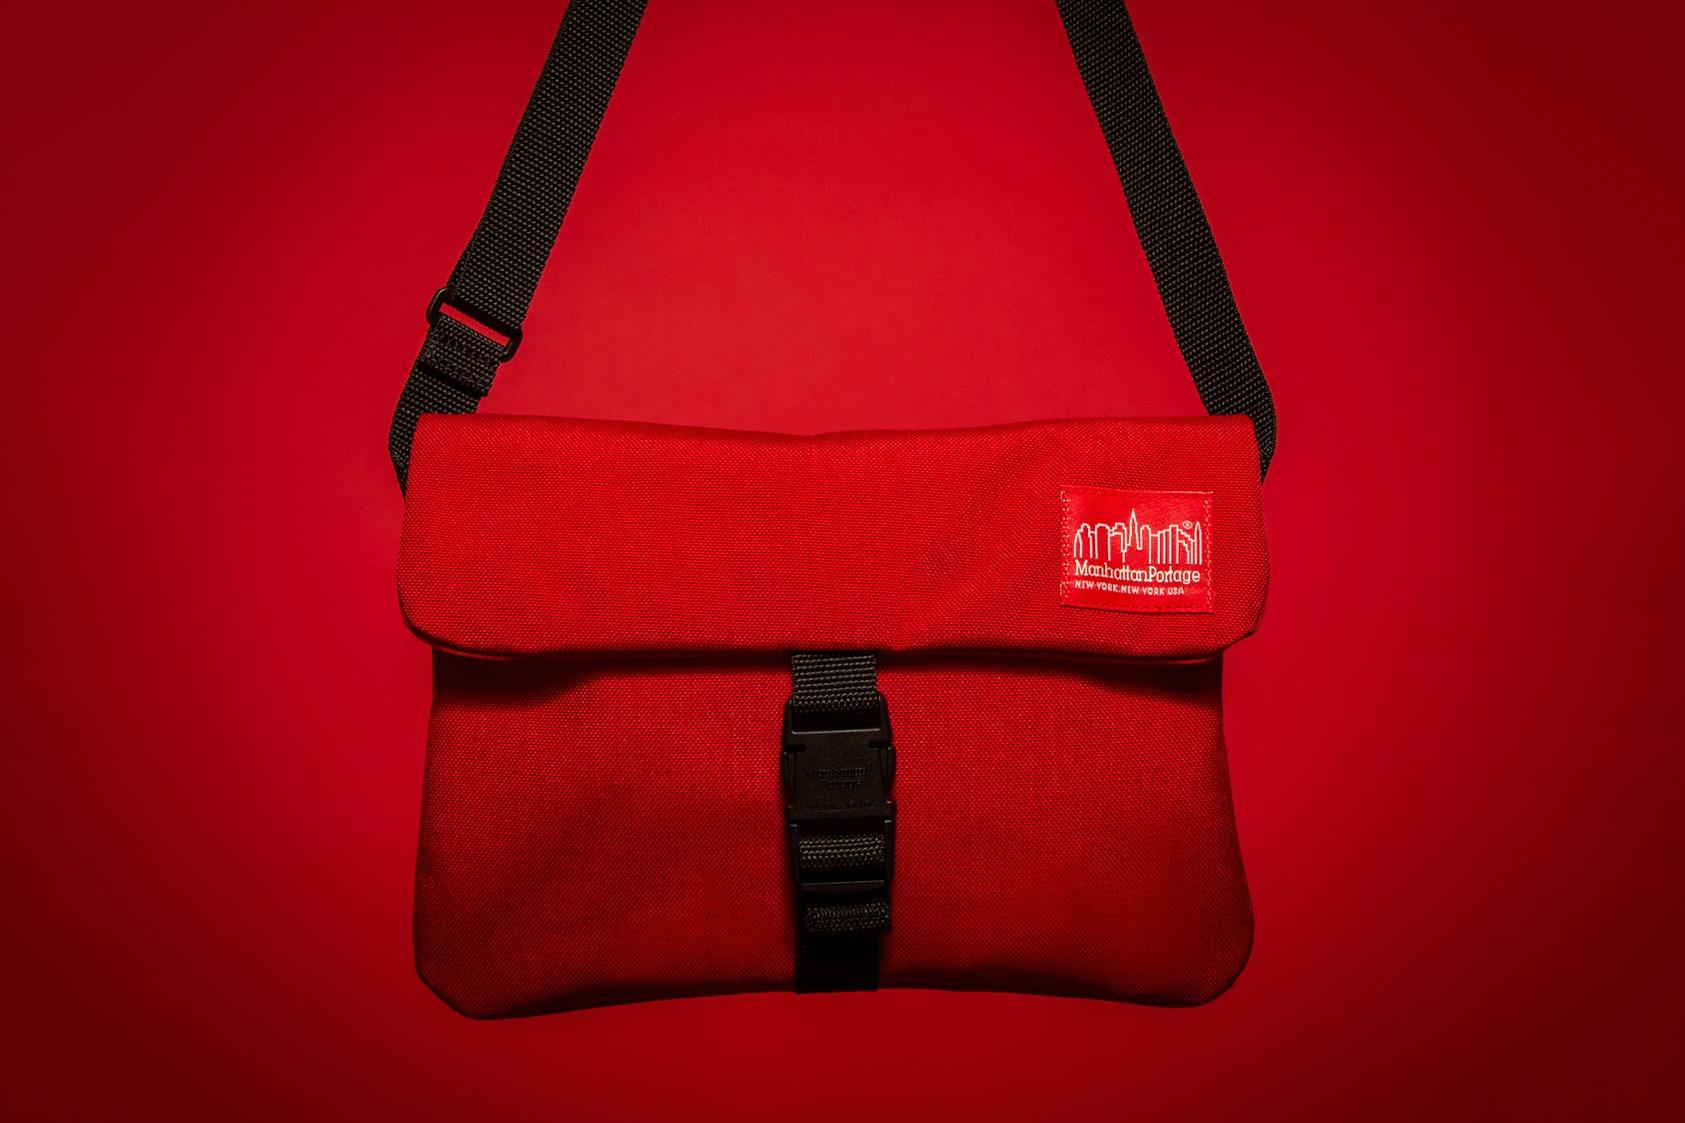 Manhattan Portage Red Label